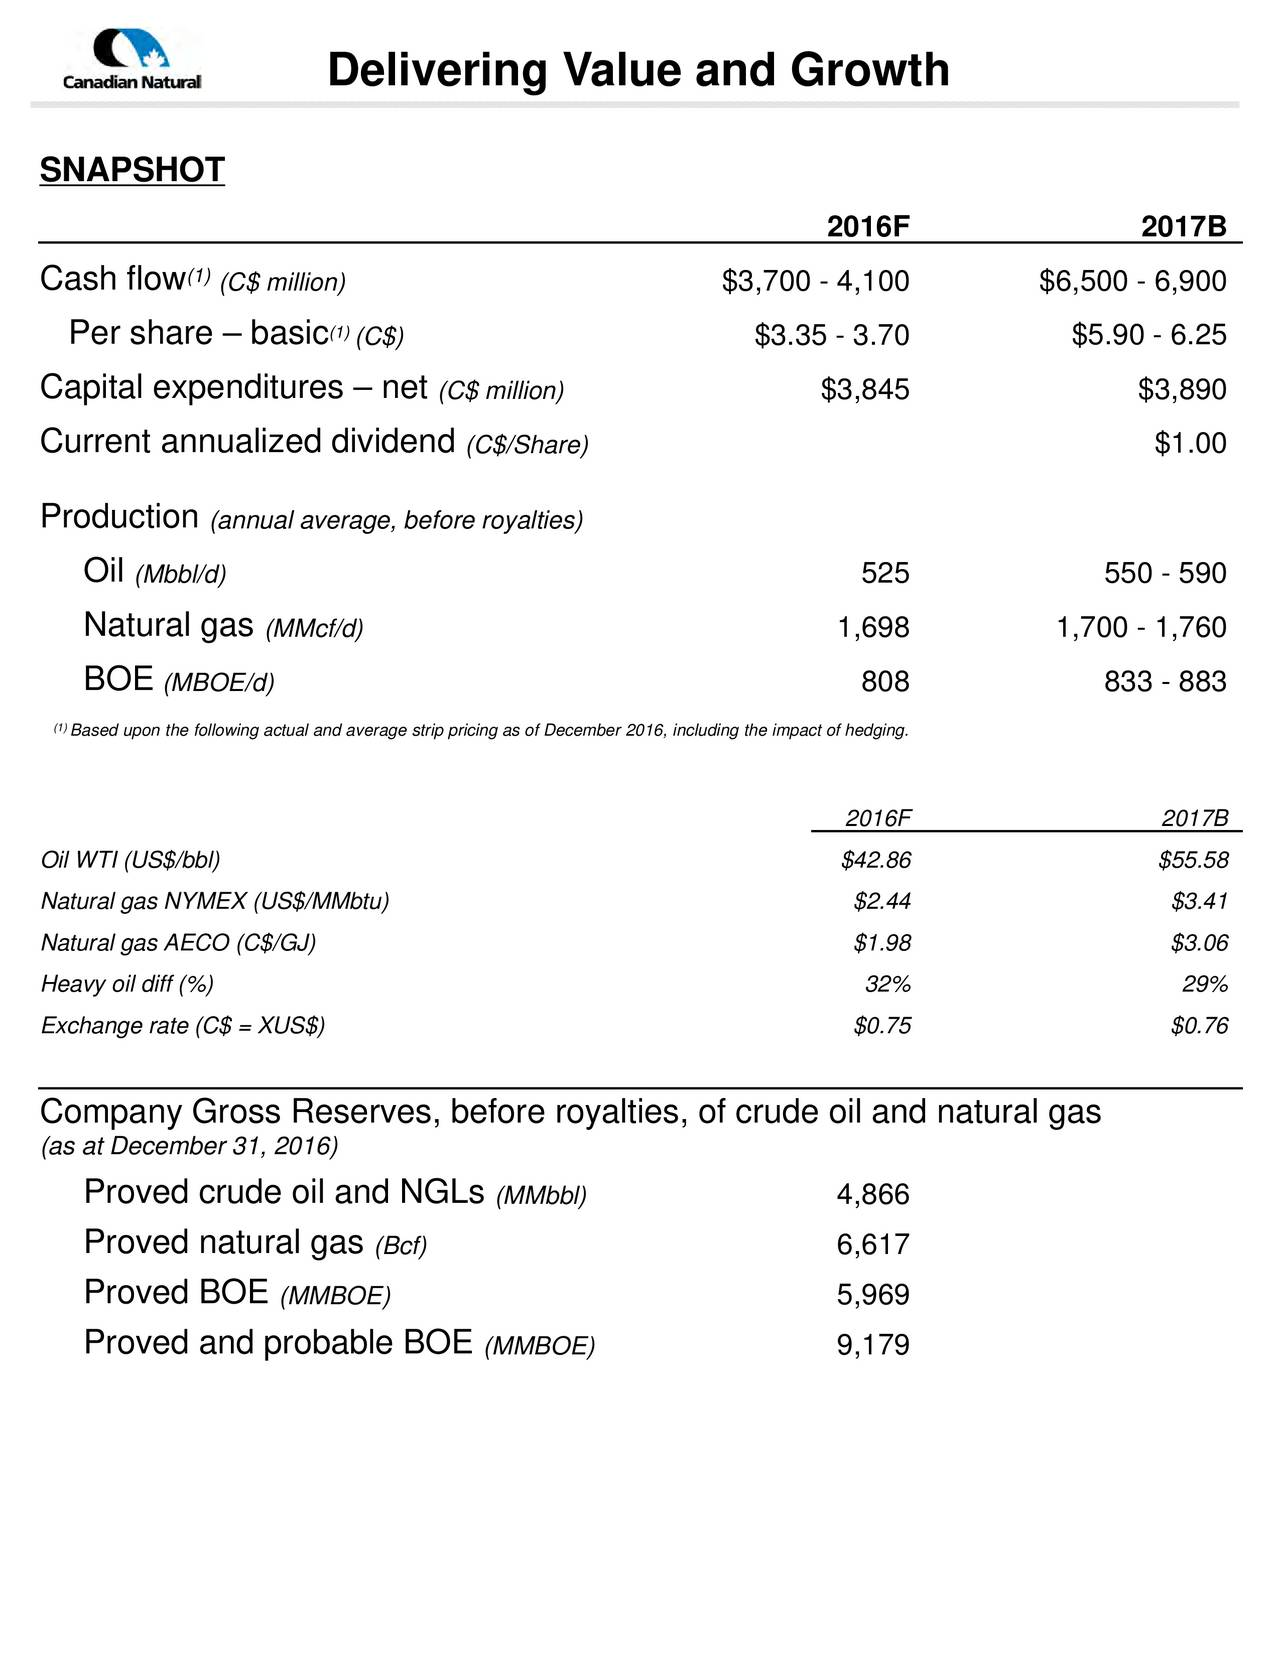 SNAPSHOT 2016F 2017B Cash flow (1)(C$ million) $3,700 - 4,100 $6,500 - 6,900 Per share  basic (1(C$) $3.35 - 3.70 $5.90 - 6.25 Capital expenditures  net (C$ million) $3,845 $3,890 Current annualized dividend (C$/Share) $1.00 Production (annual average, before royalties) Oil (Mbbl/d) 525 550 - 590 Natural gas (MMcf/d) 1,698 1,700 - 1,760 BOE (MBOE/d) 808 833 - 883 (Based upon the following actual and average strip pricing as of December 2016, including the impact of hedging. 2016F 2017B Oil WTI (US$/bbl) $42.86 $55.58 Natural gas NYMEX (US$/MMbtu) $2.44 $3.41 Natural gas AECO (C$/GJ) $1.98 $3.06 Heavy oil diff (%) 32% 29% Exchange rate (C$ = XUS$) $0.75 $0.76 Company Gross Reserves, before royalties, of crude oil and natural gas (as at December 31, 2016) Proved crude oil and NGLs (MMbbl) 4,866 Proved natural gas (Bcf) 6,617 Proved BOE (MMBOE) 5,969 Proved and probable BOE (MMBOE) 9,179